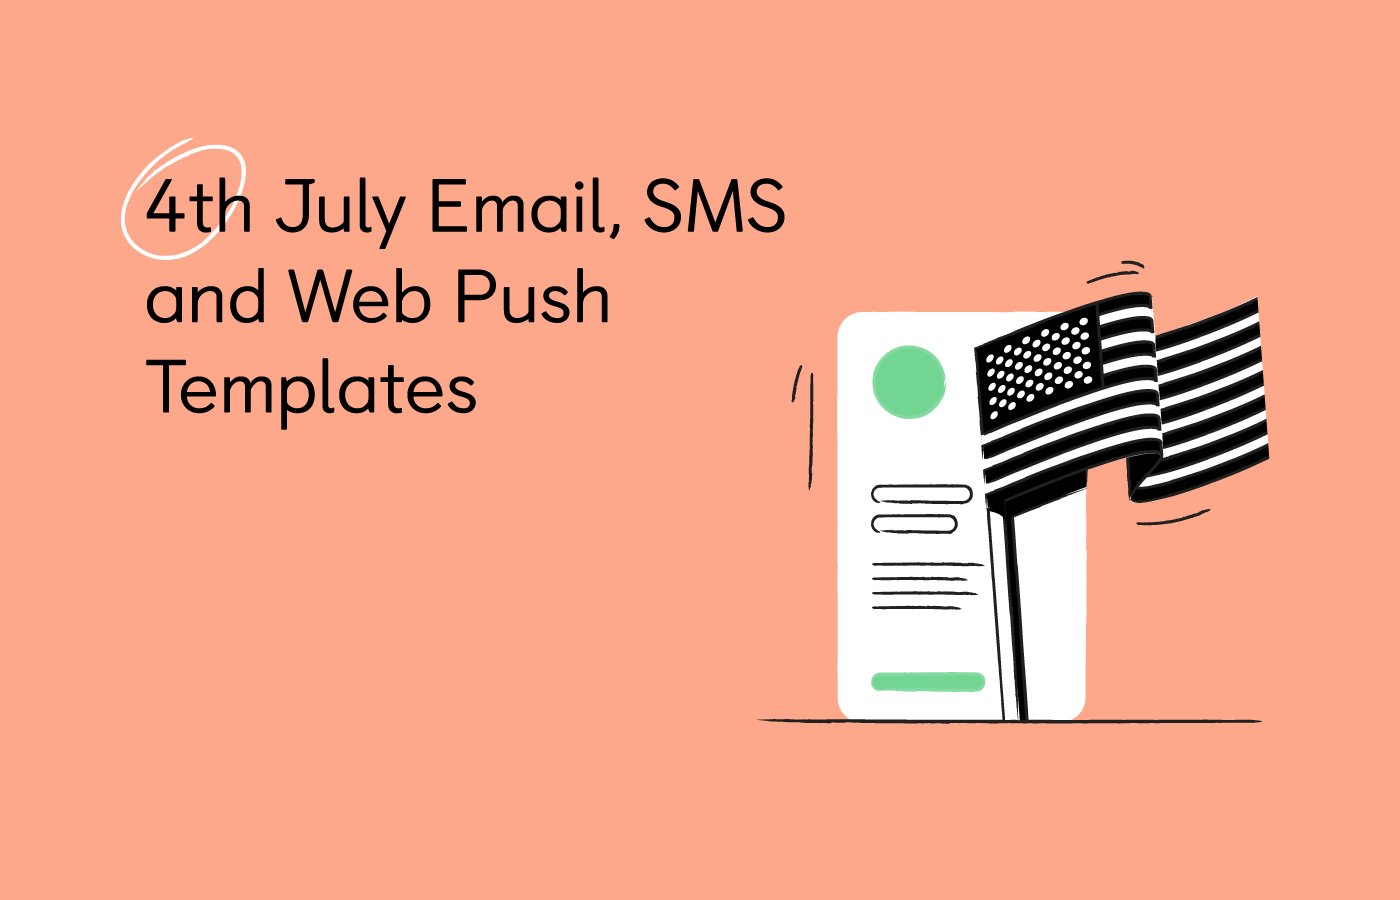 4th of July Marketing Campaigns: SMS, Push, and Email Templates